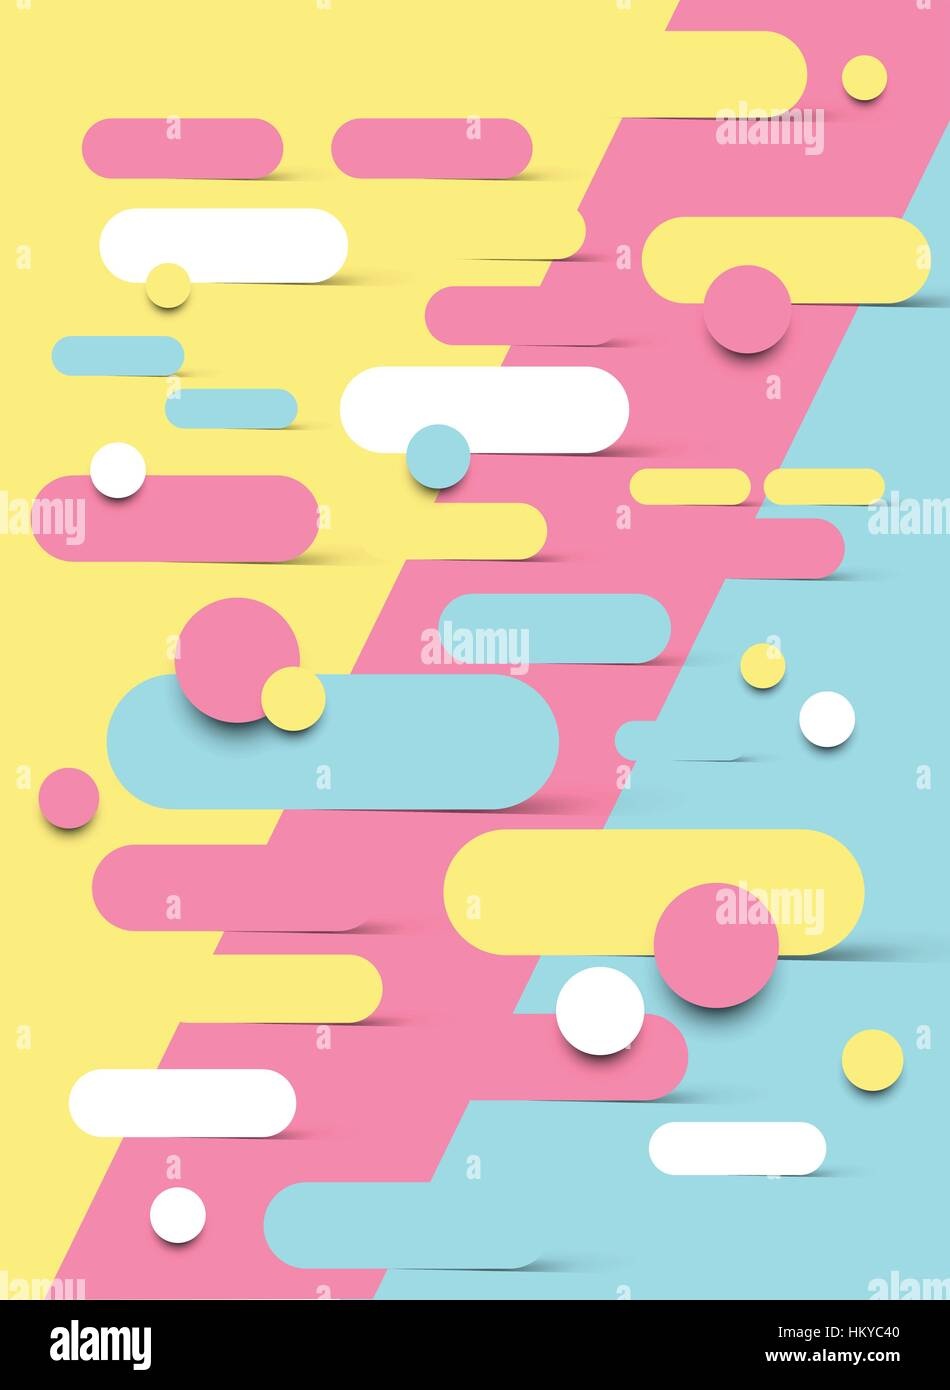 Abstract background design with shapes melting into each other. Vector illustration - Stock Image